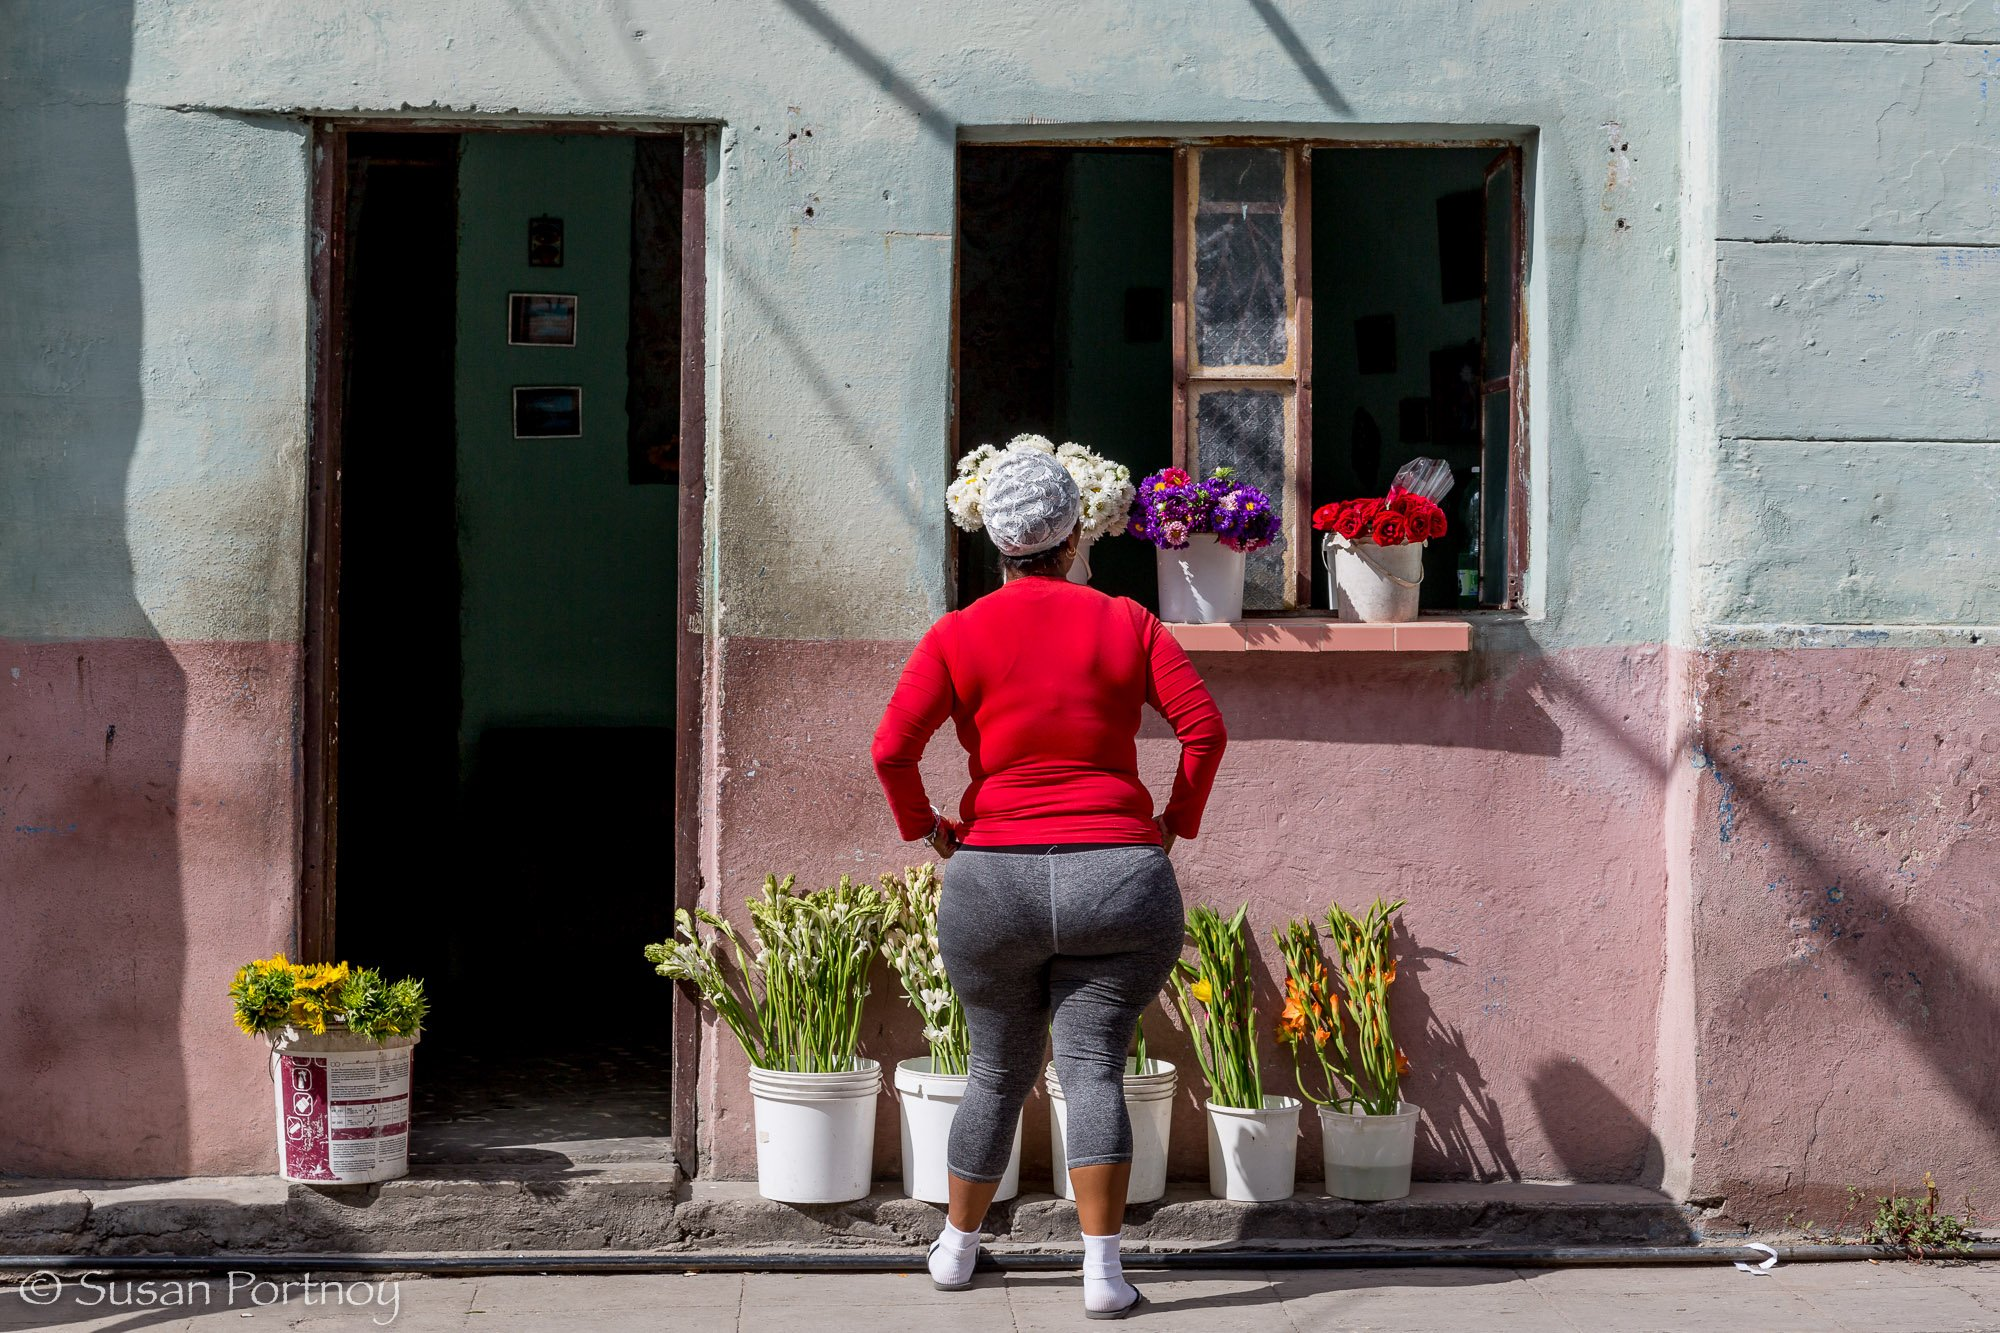 Woman standing in front of her flower shop in Havana, Cuba